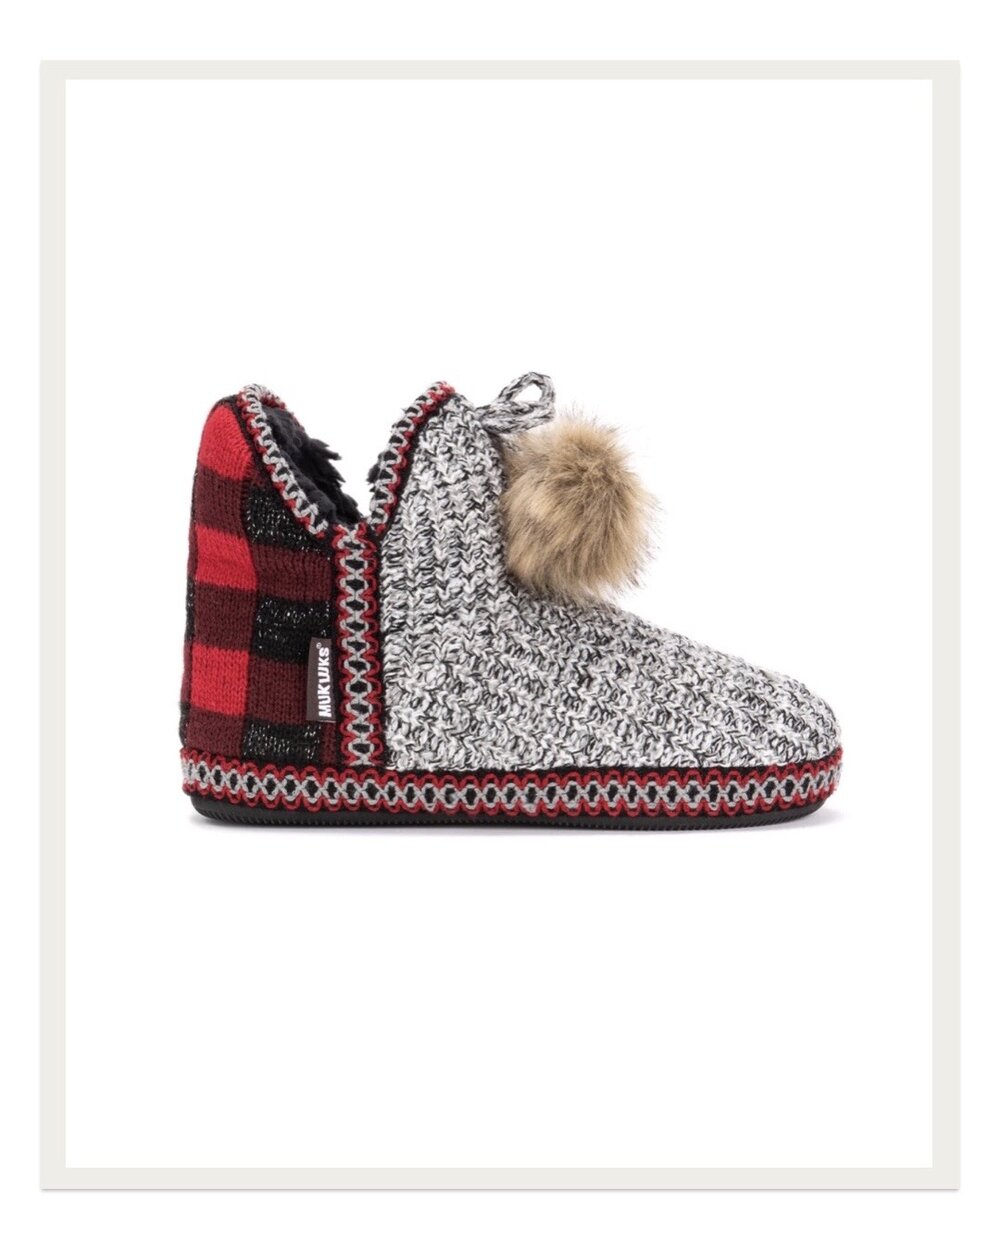 Mukluks seem to be part of the maker uniform these days, and I just love this pair with buffalo plaid heels and a cozy sweatshirt-vibe front. Putting these on my feet in the morning gets me right into the maker mood!